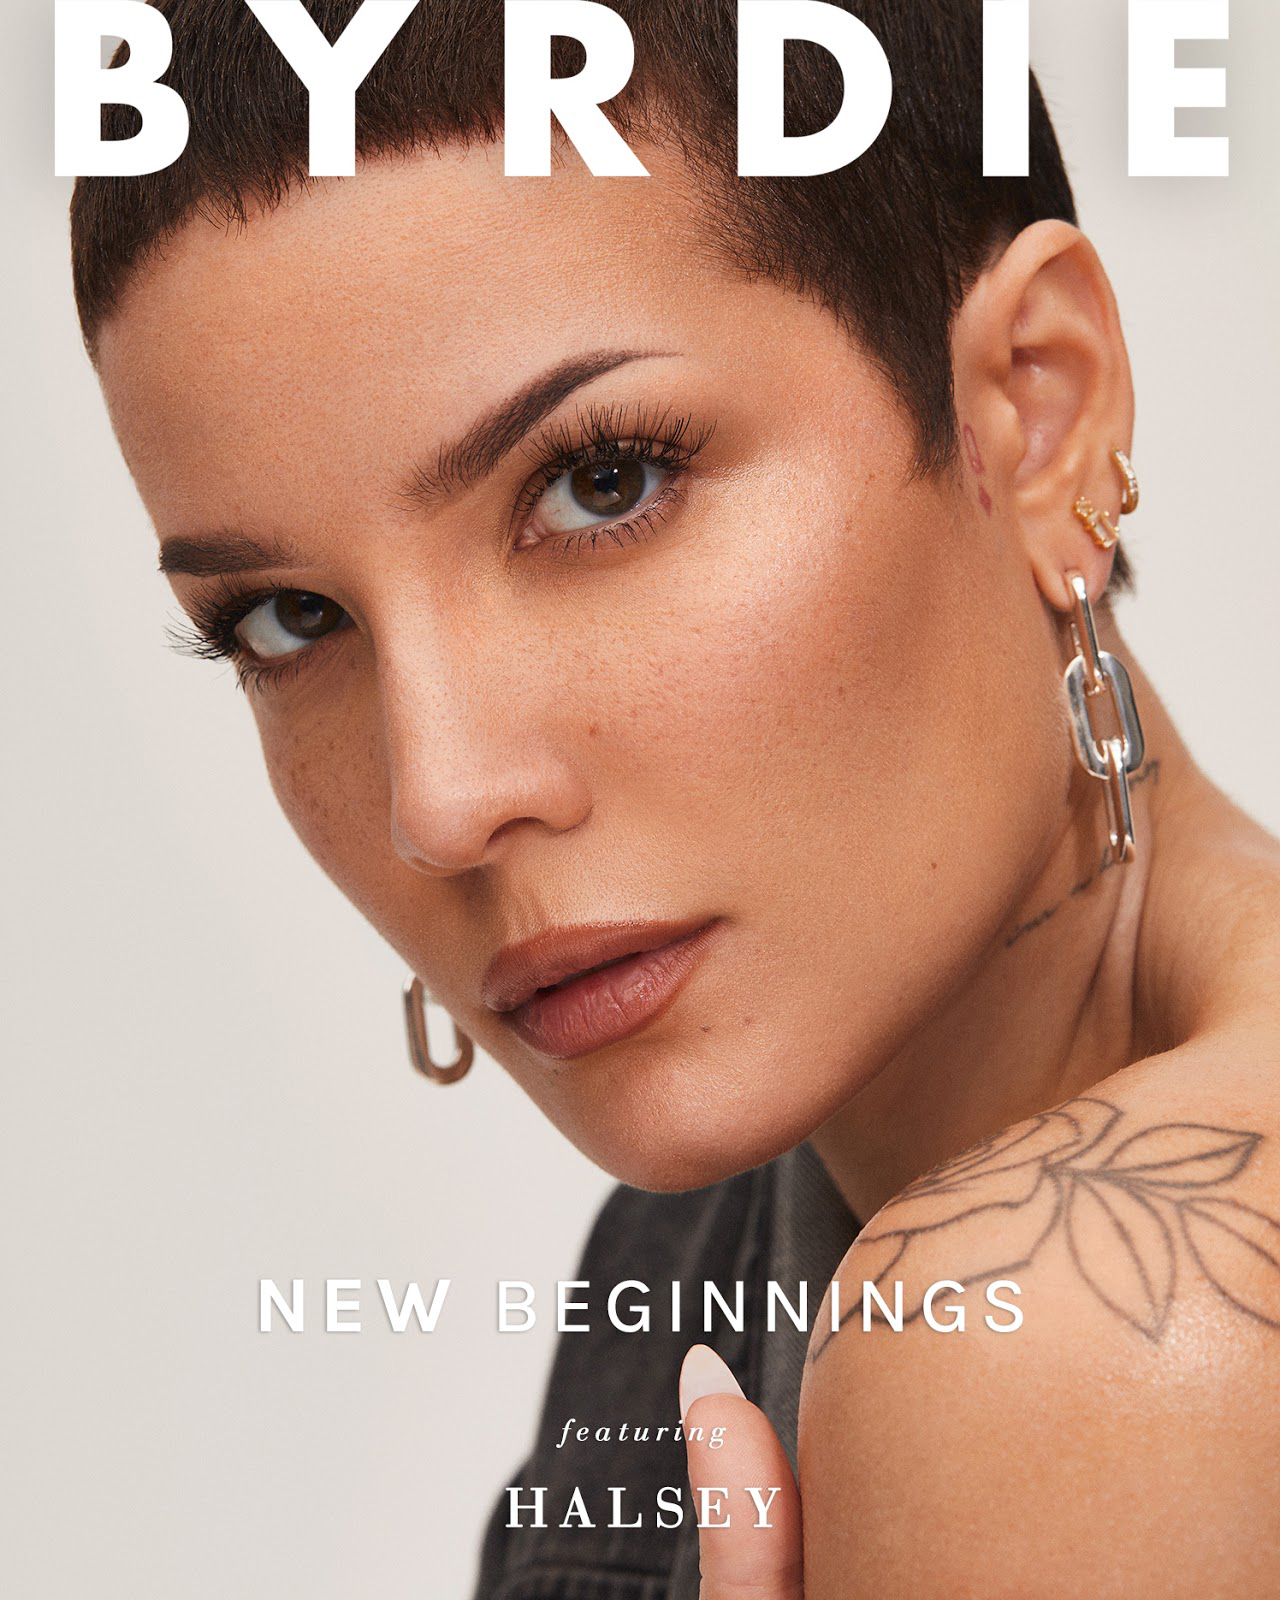 Halsey on the cover of Byrdie's Winter Digital Issue